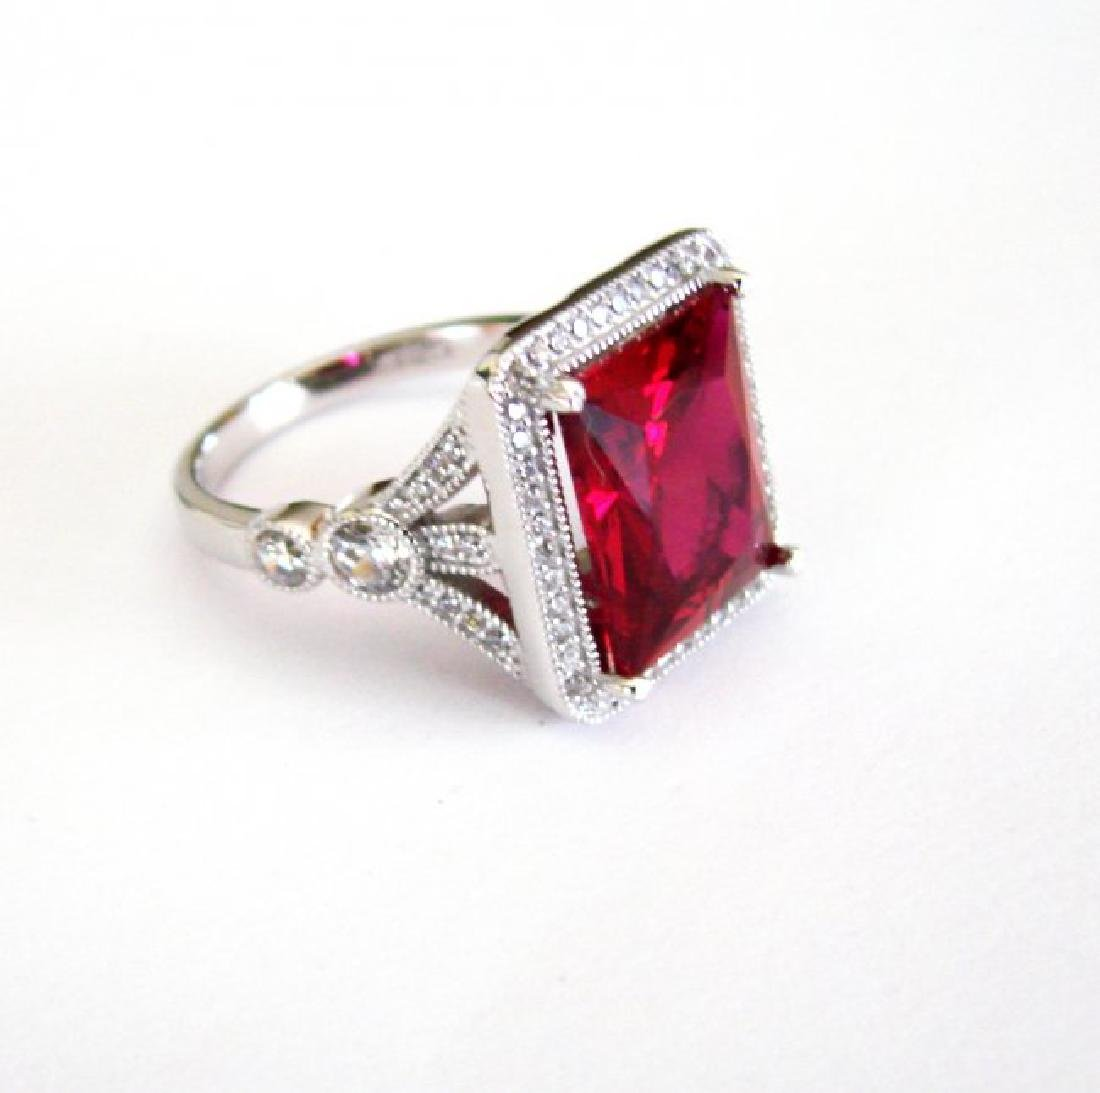 Creation Daimond Ruby Ring 8.61Ct 18k W/g Overlay - 2